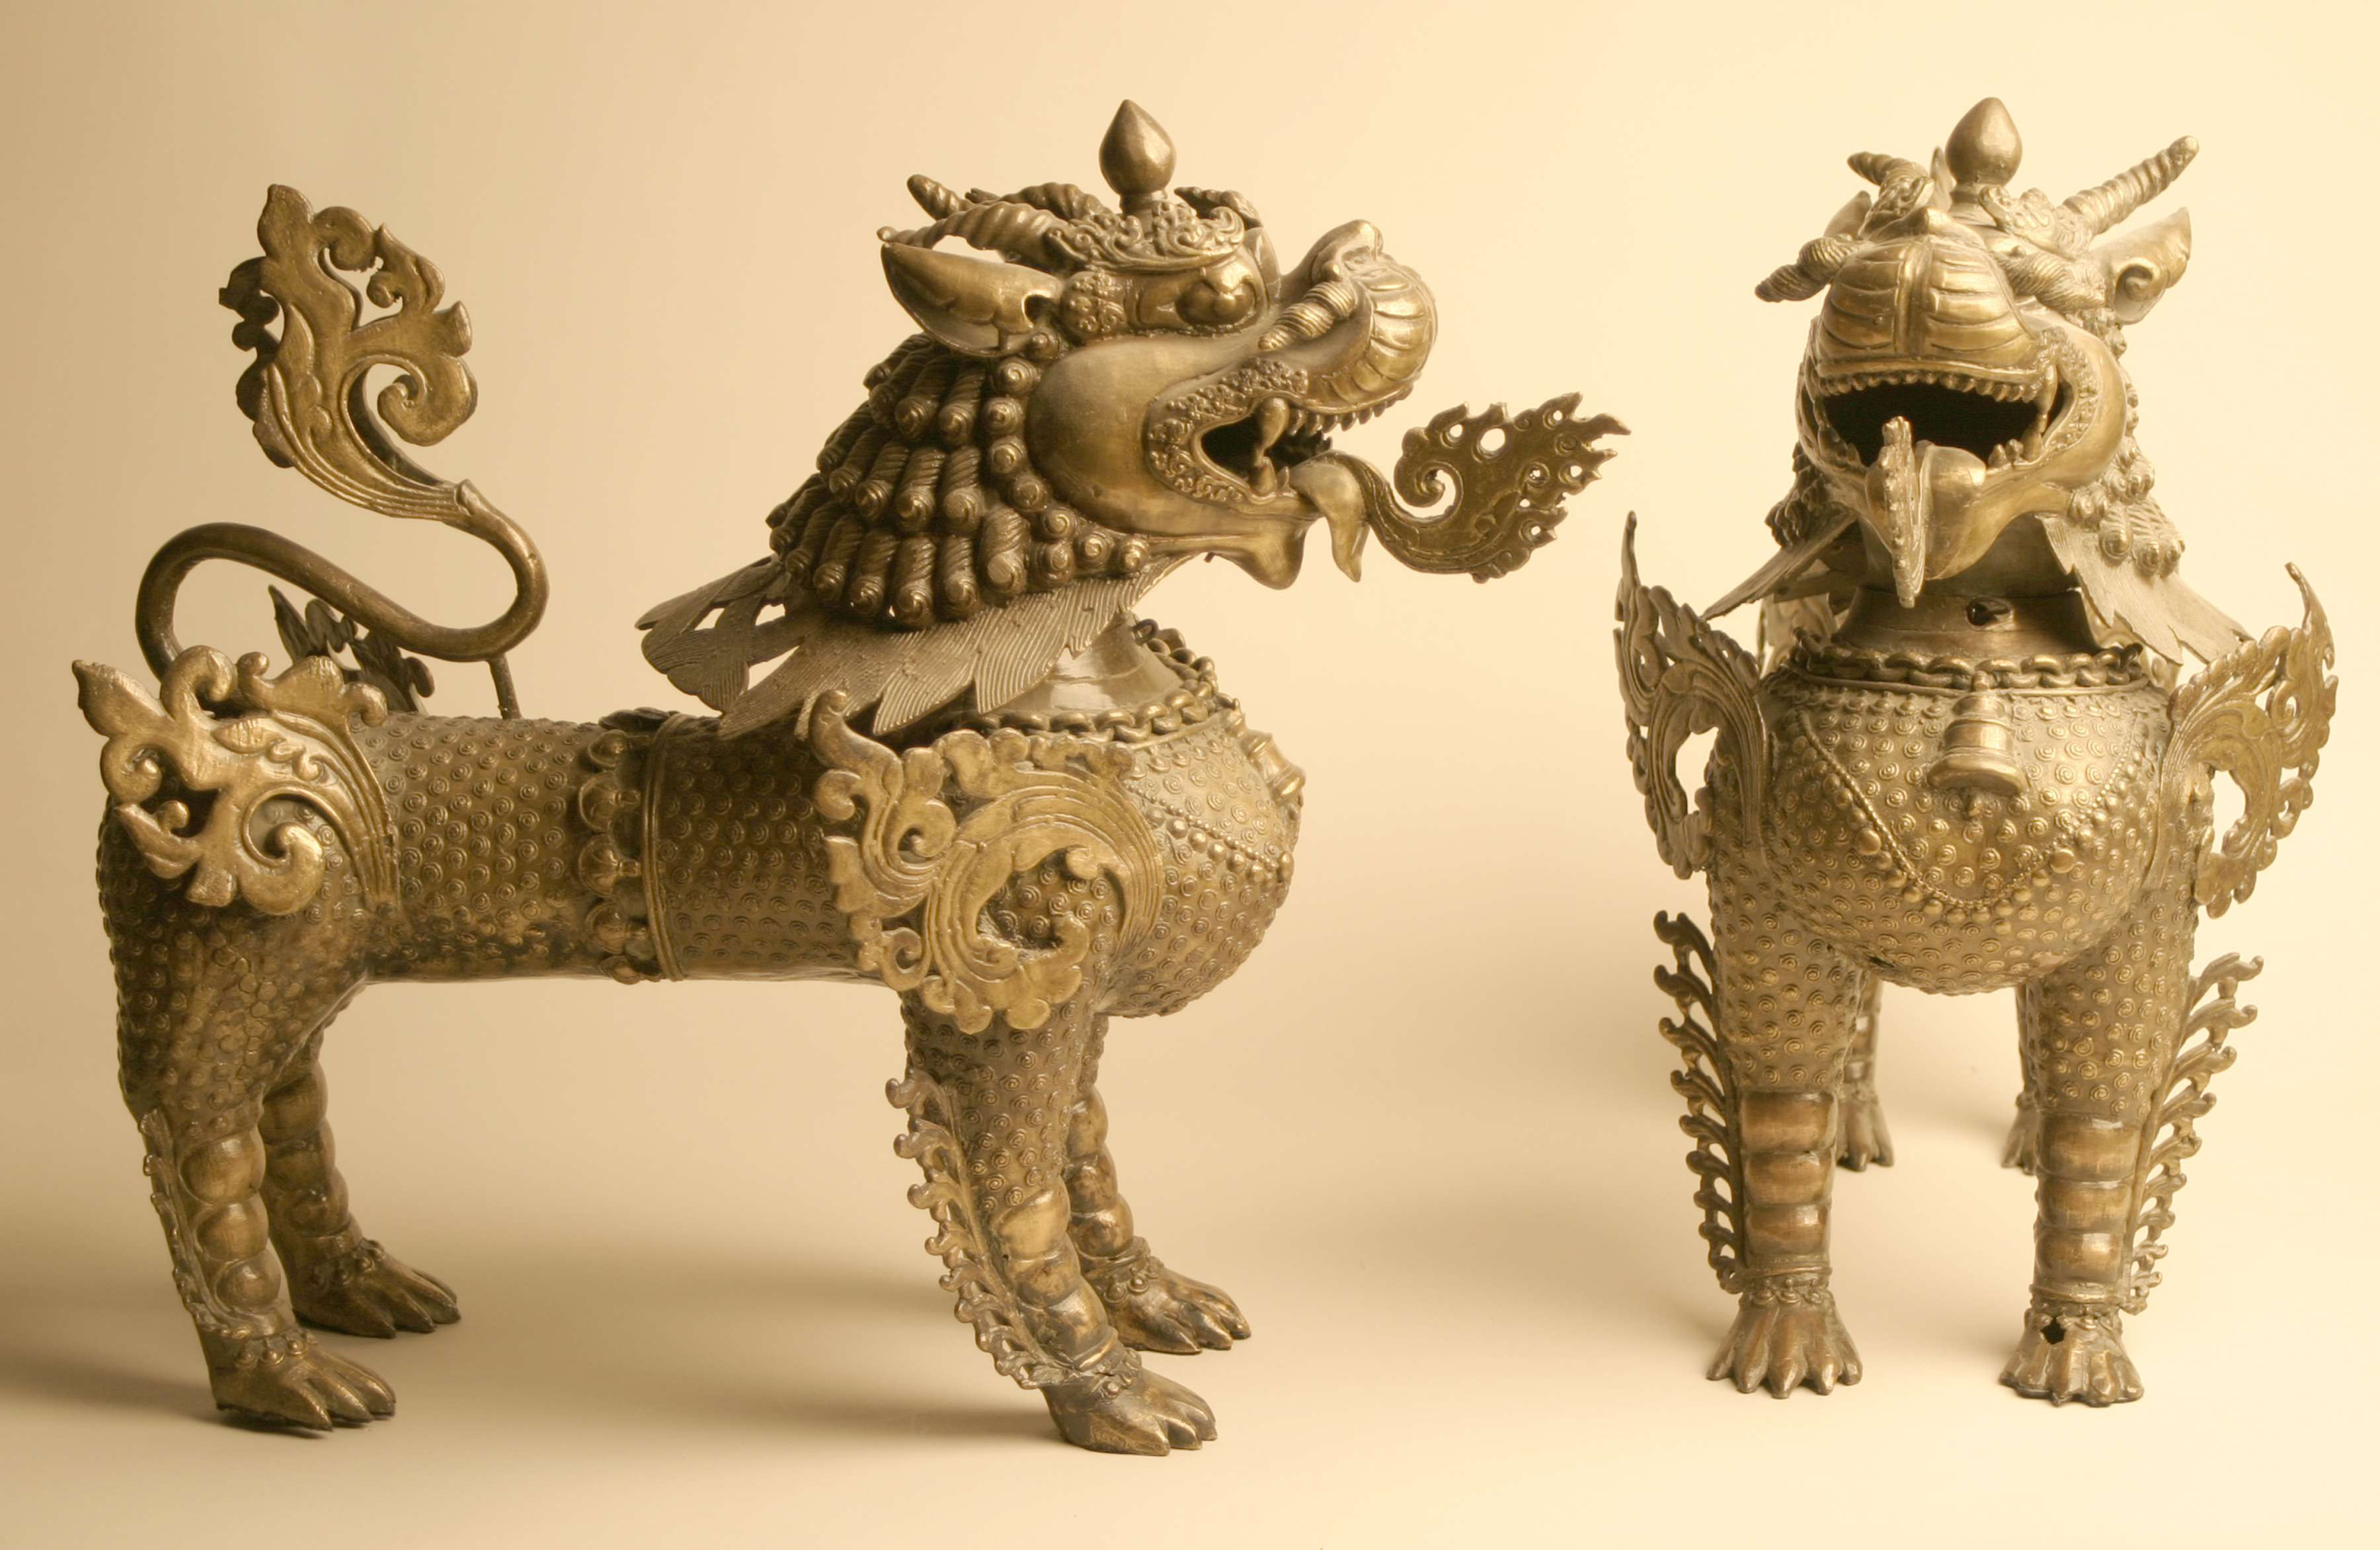 Lion-Dog Incense Burner, 19th century